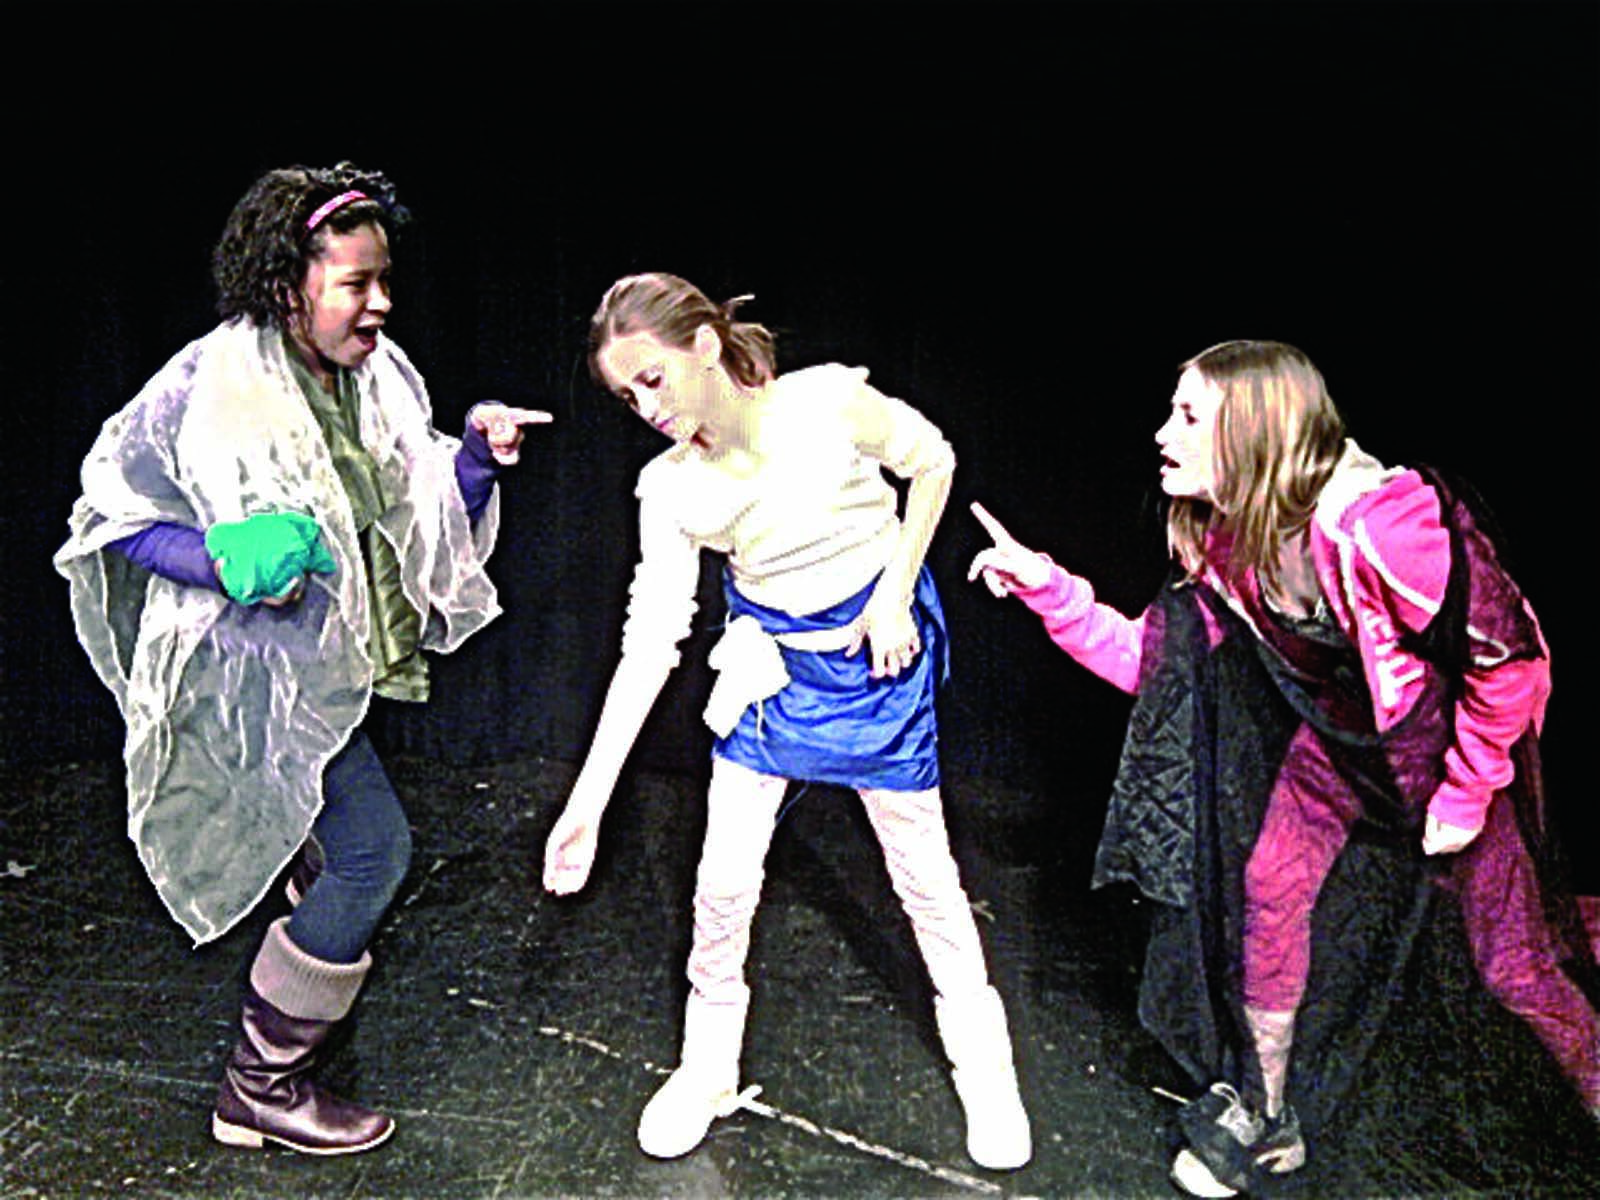 Middle school students Nia, 11, Sarah, 12, and Amalia, 12, perform on stage during a Rockland Youth Theatre class.